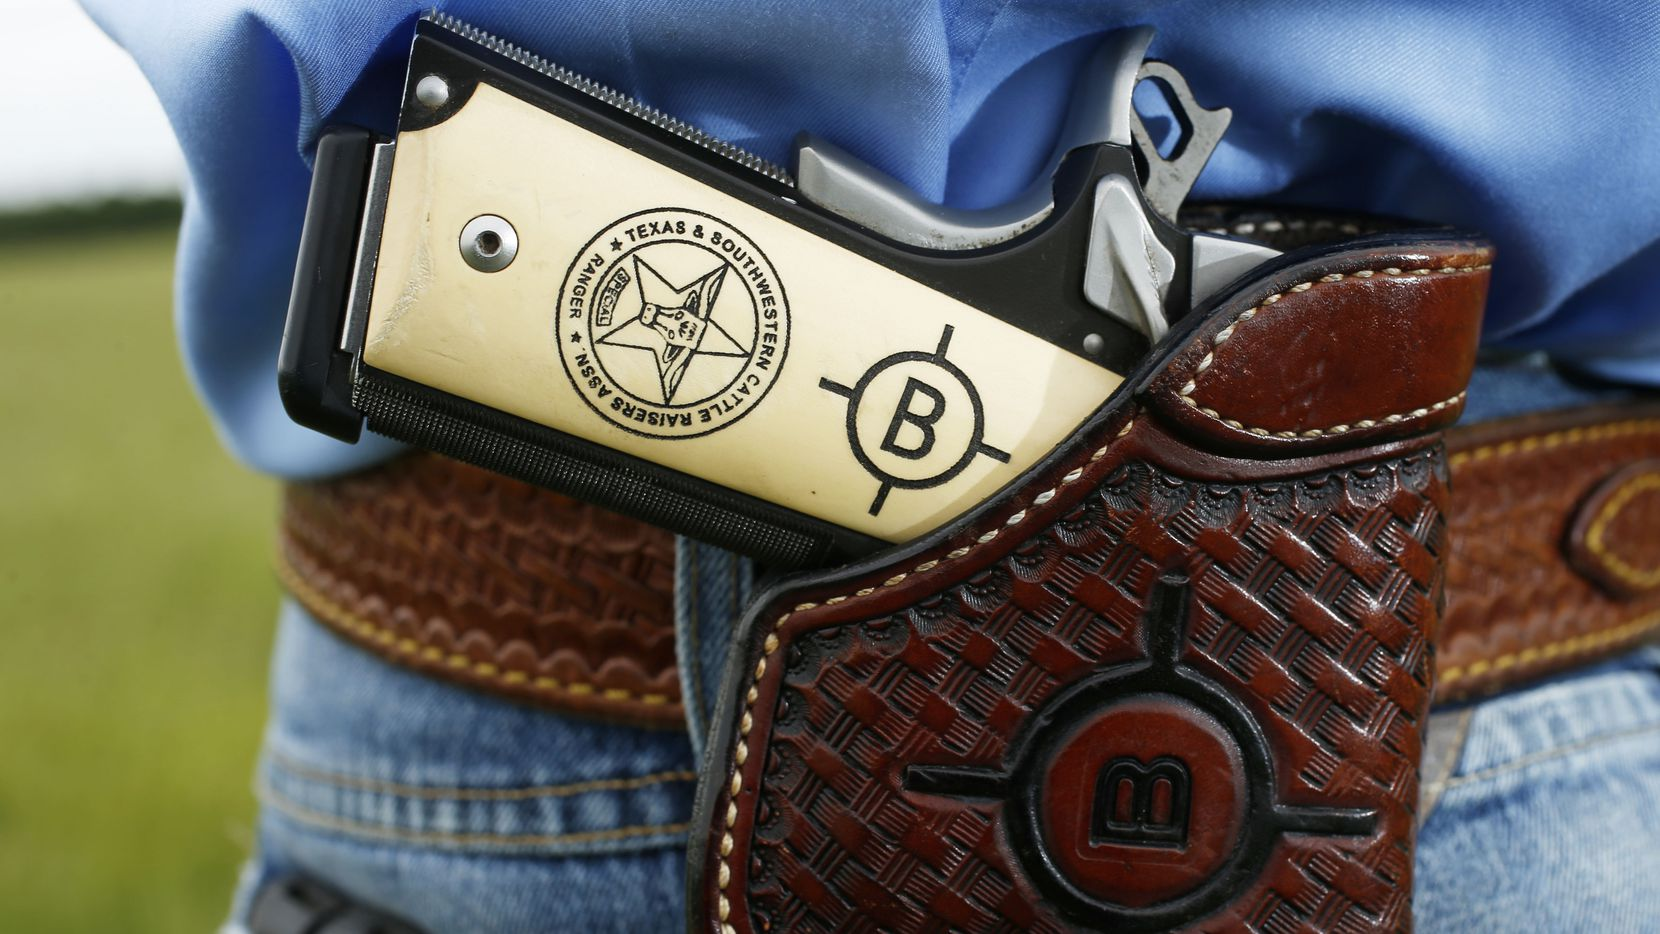 In Texas, cattle rustling evolves into sophisticated